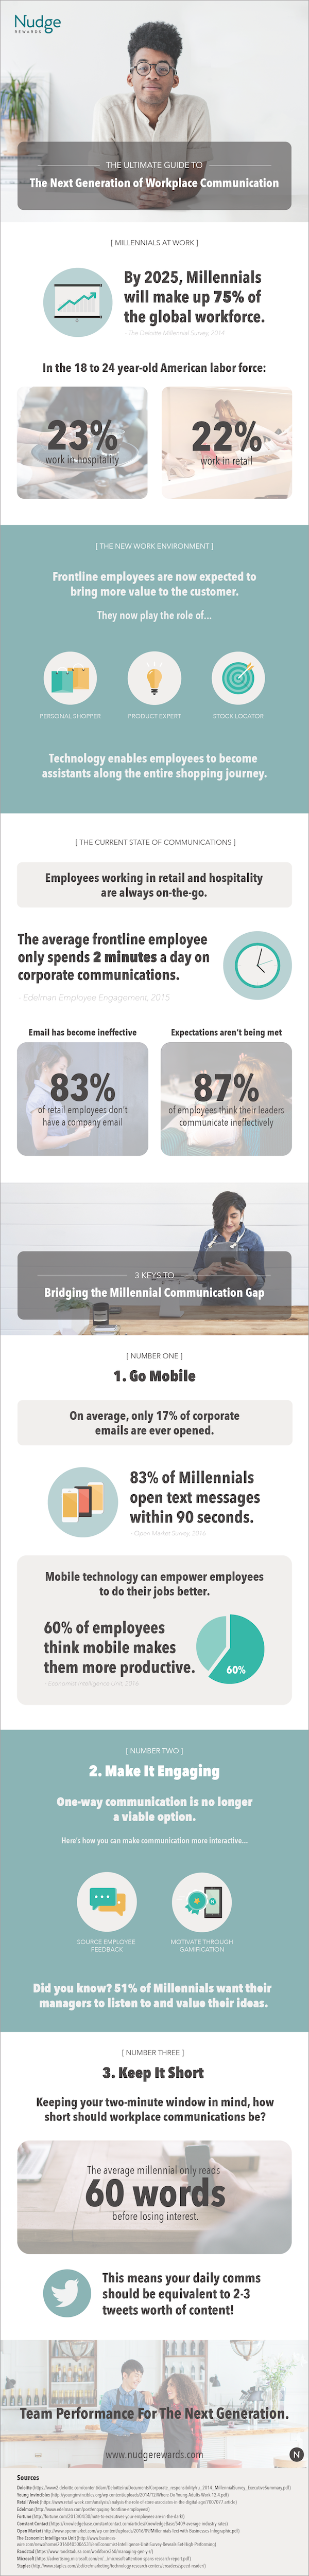 infographic with stats, images, and text around communication and millennials